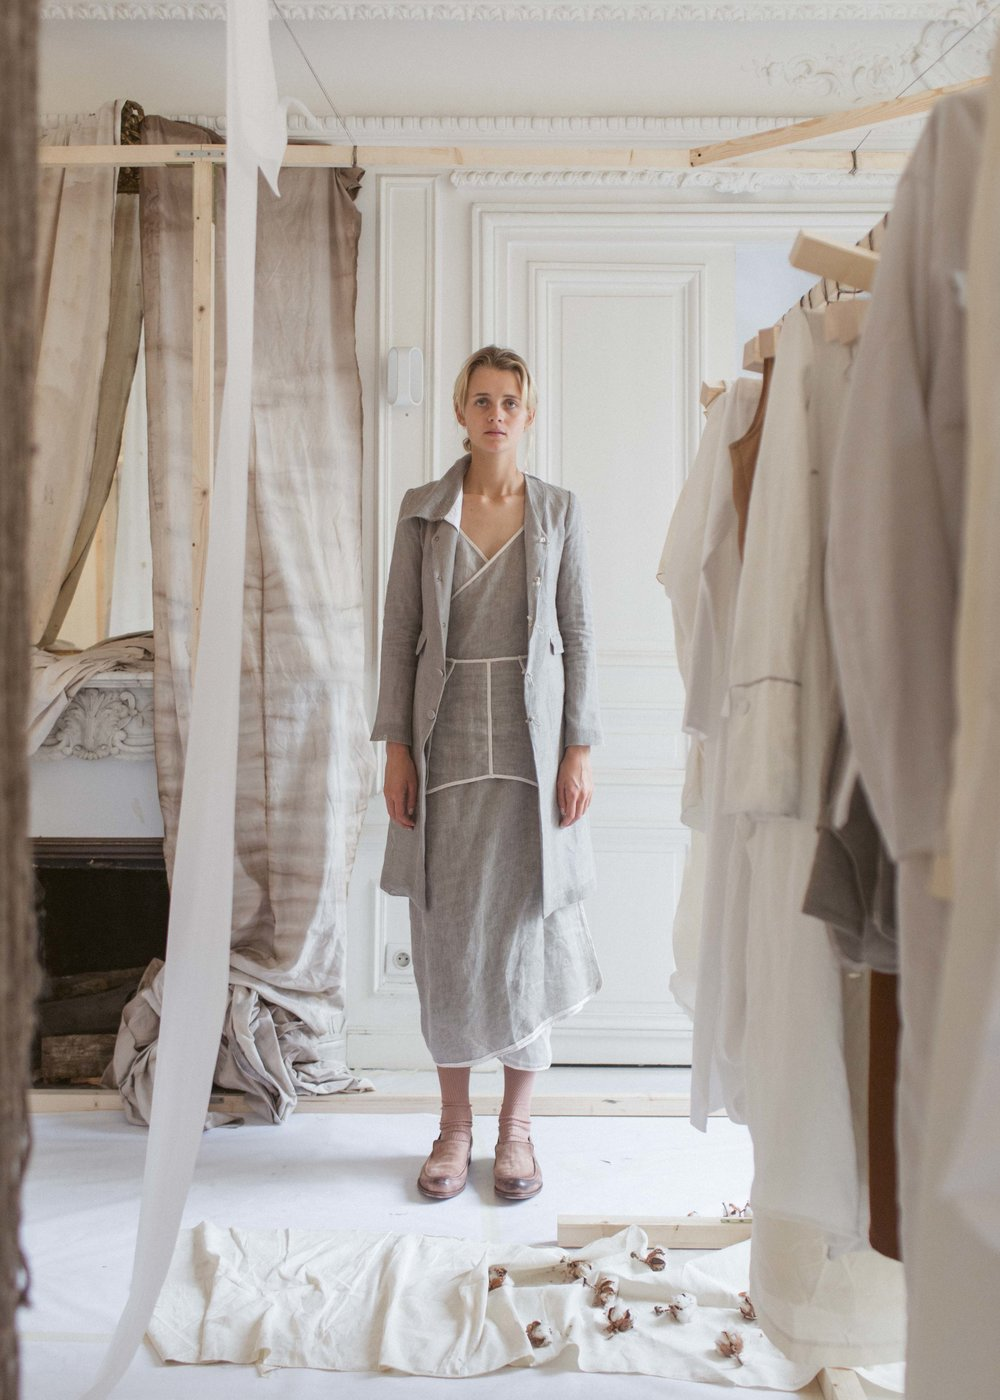 104SS18   COAT WITH REMOVABLE LINING   AND COLLAR  , MEDIUM LINEN MESH, GREY      99SS18    TWO PIECE DRESS, LIGHT LINEN MESH, GREY